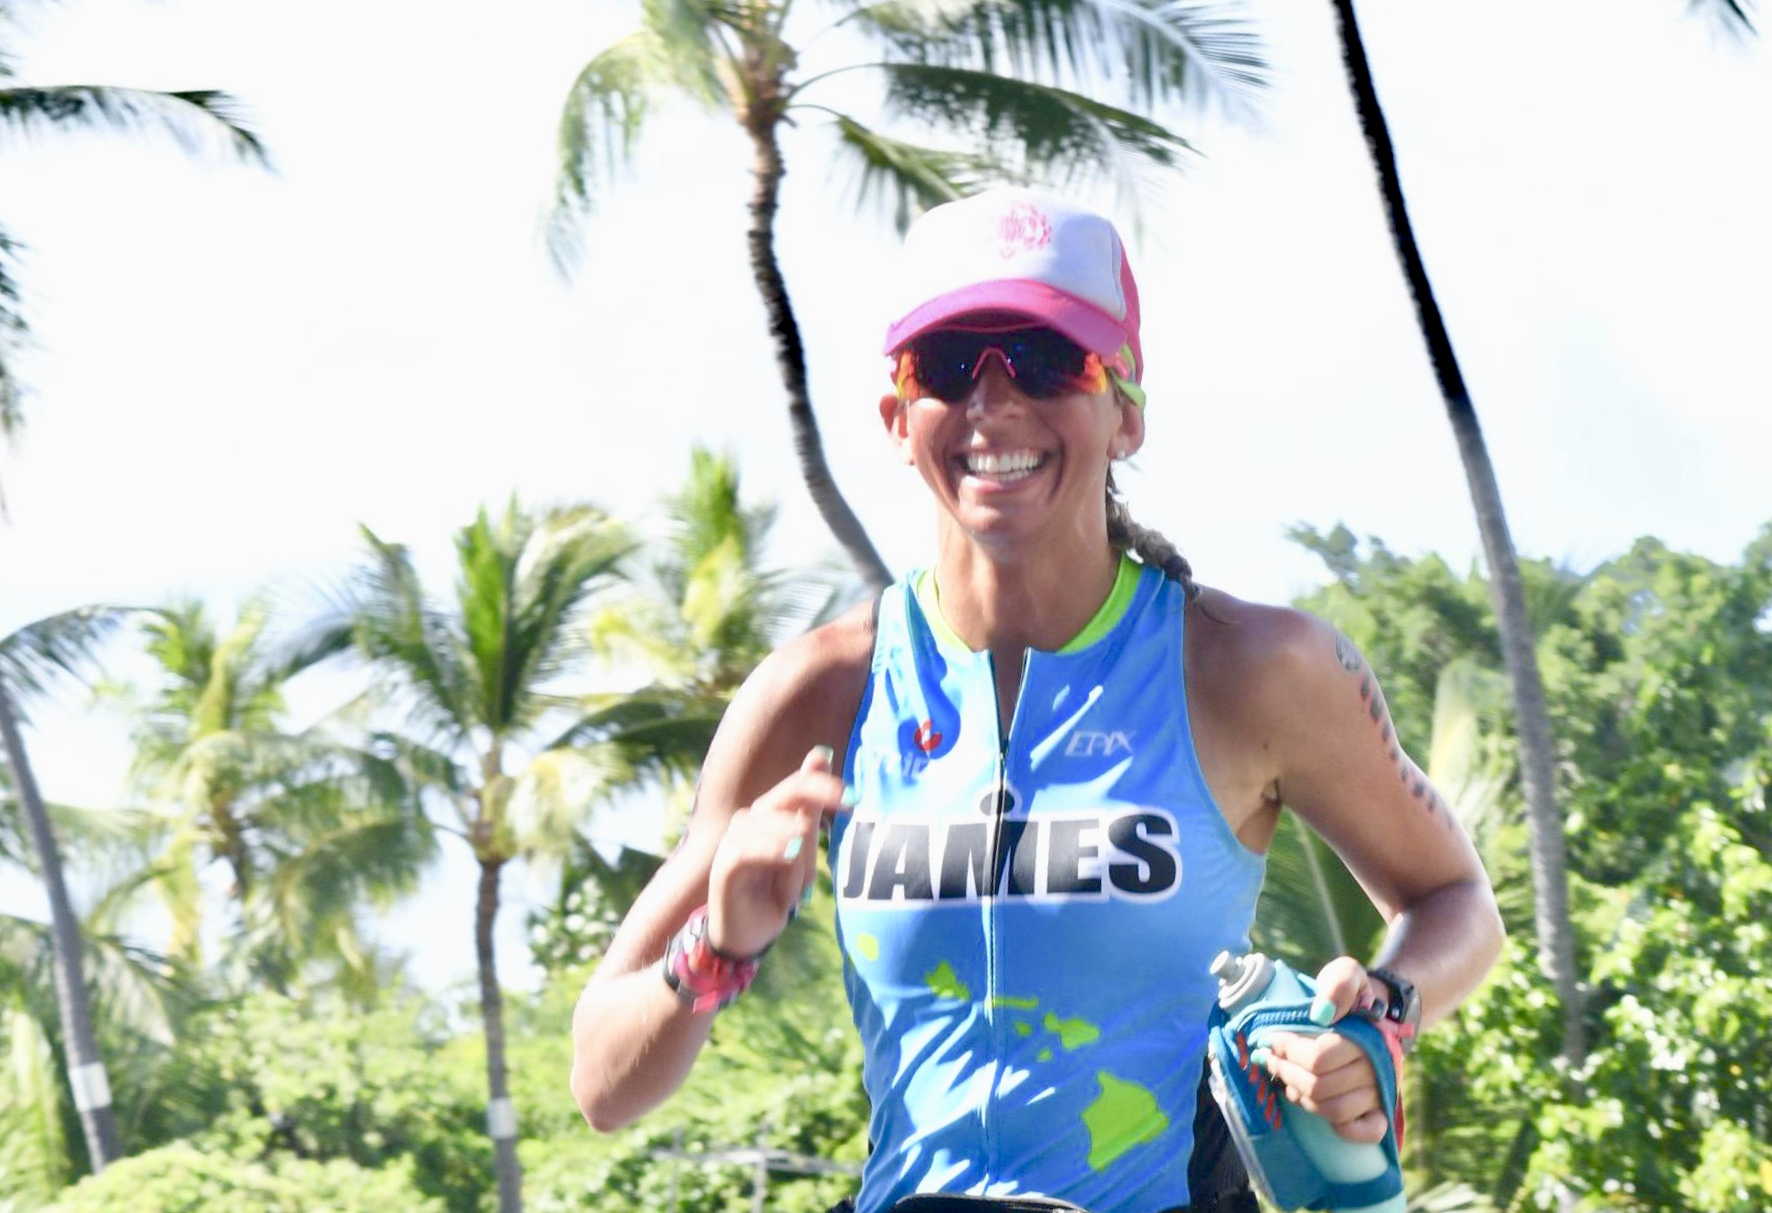 Coach_Terry_Wilson_Pursuit_of_The_Perfect_Race_IRONMAN_World_Championship_Kona_Elizabeth_James_5.jpeg